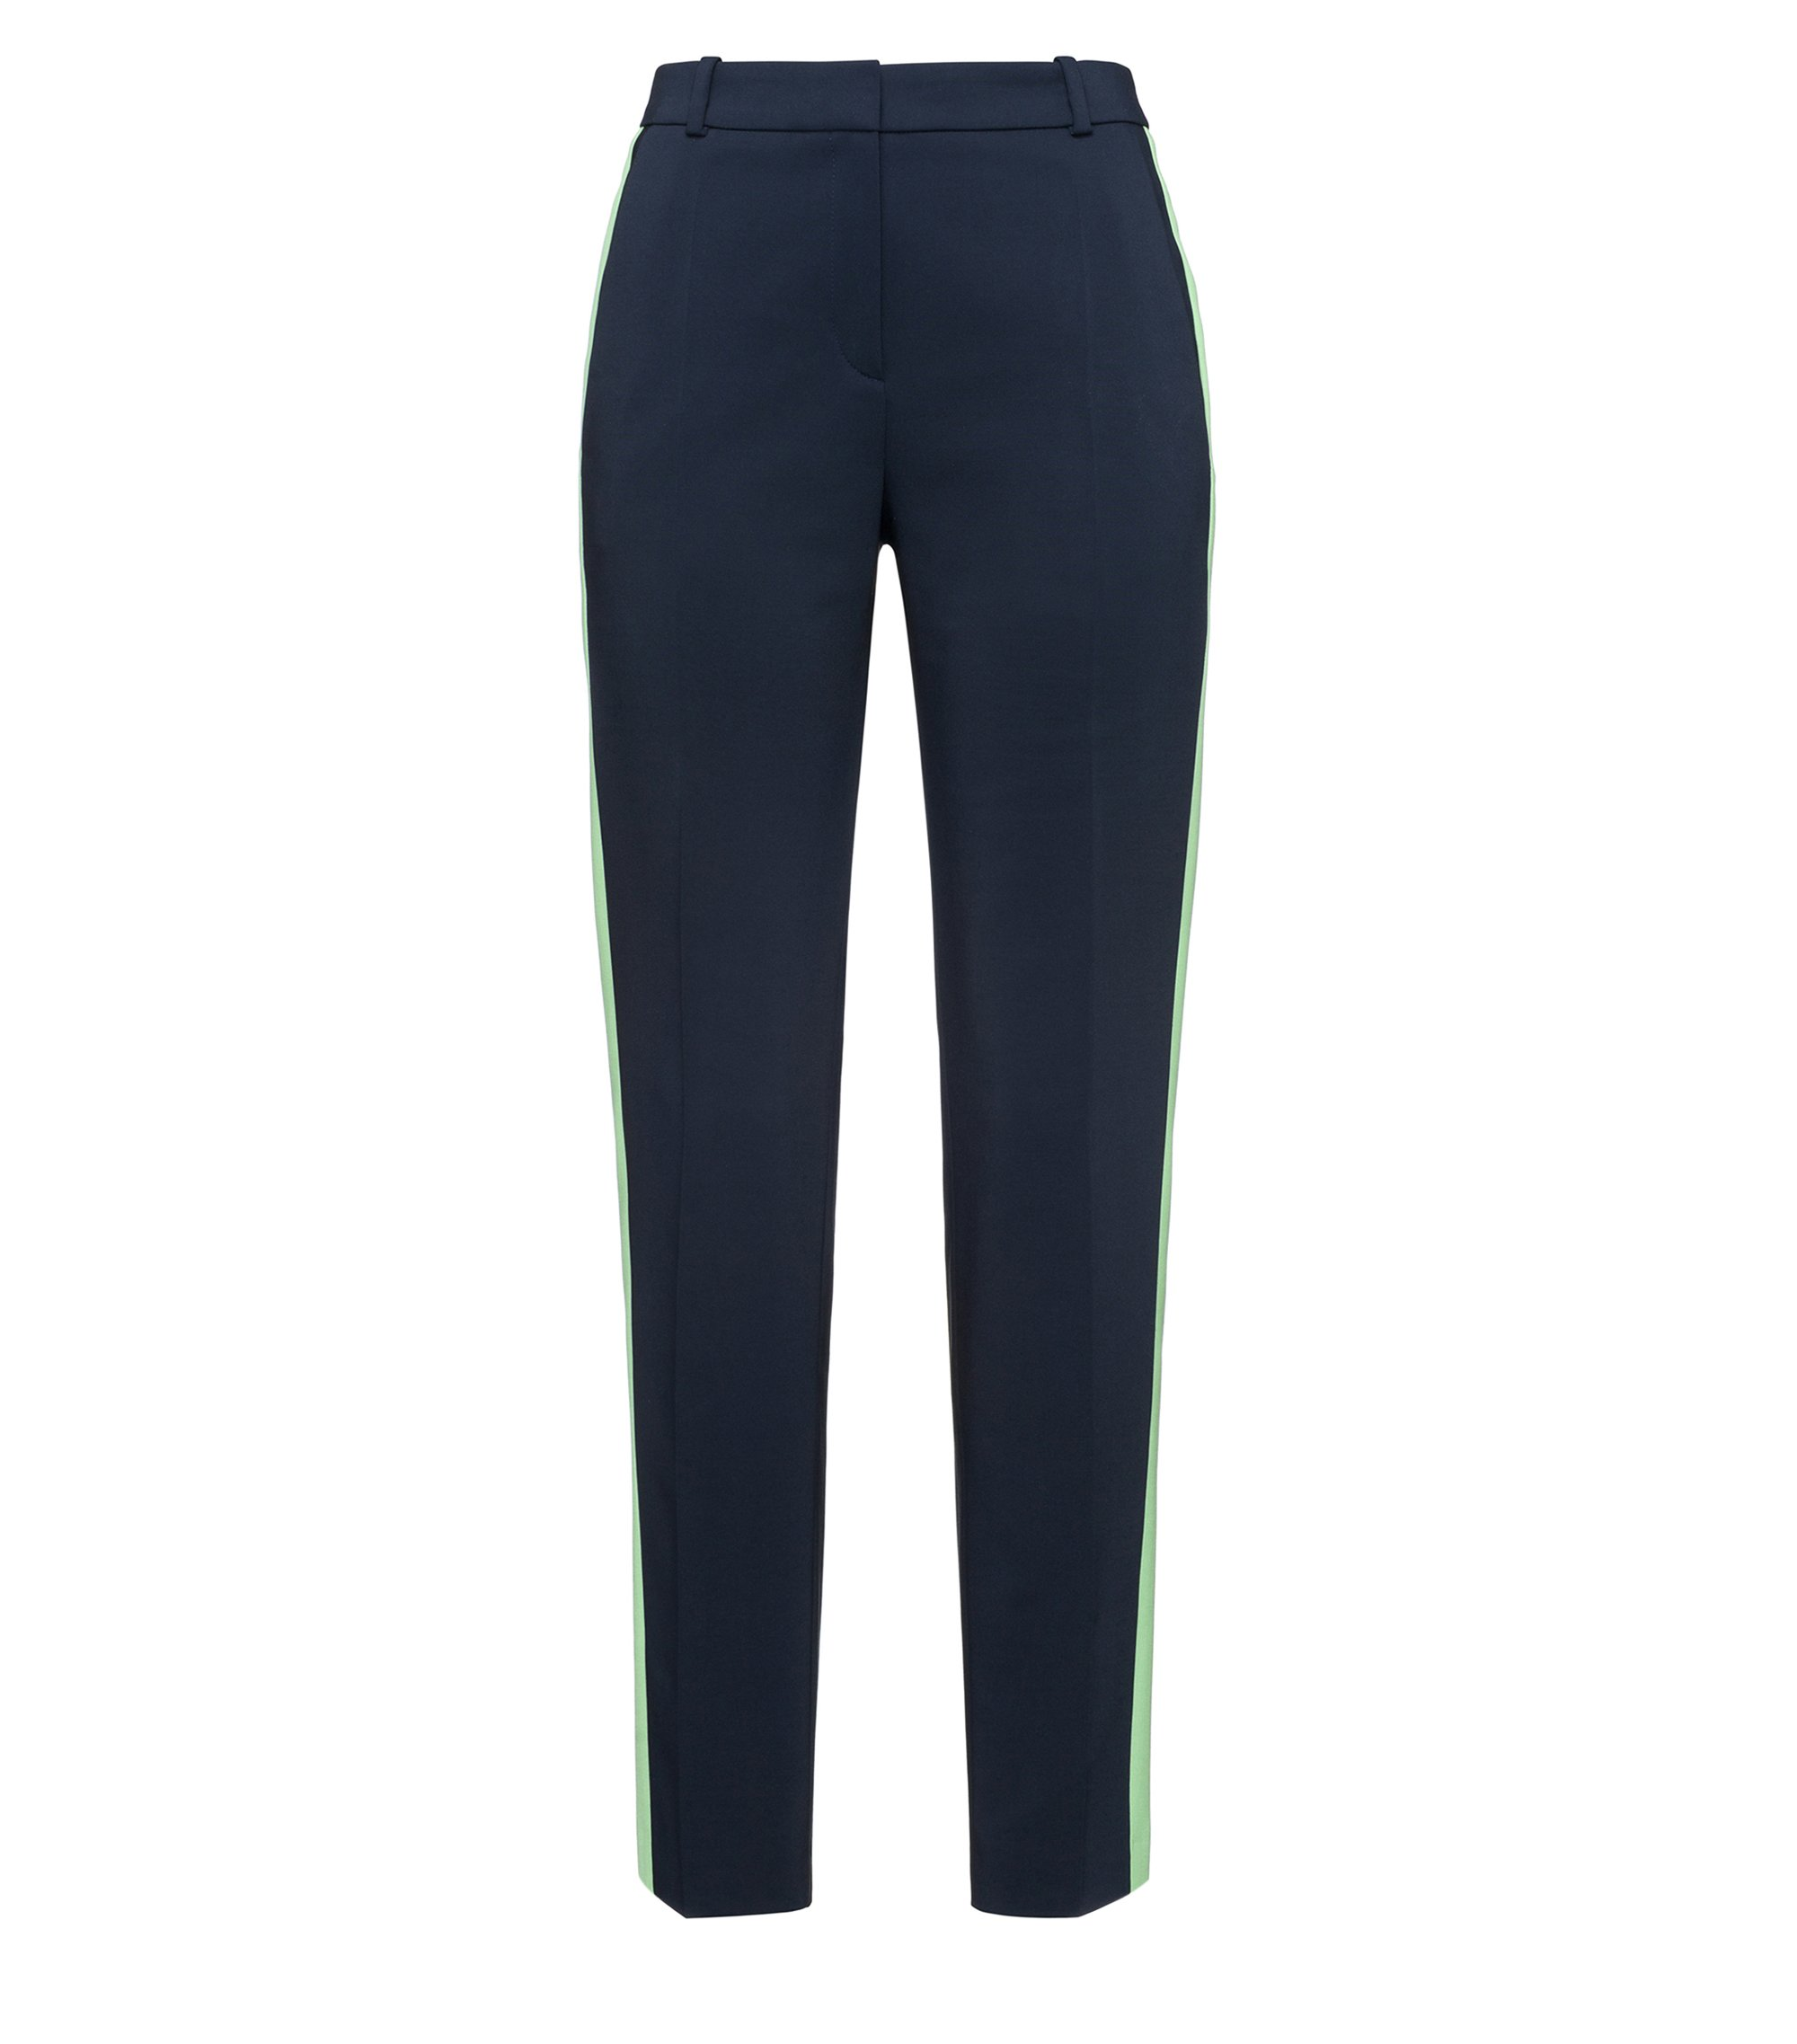 Slim-fit cigarette pants met stretch en contrastbies, Donkerblauw